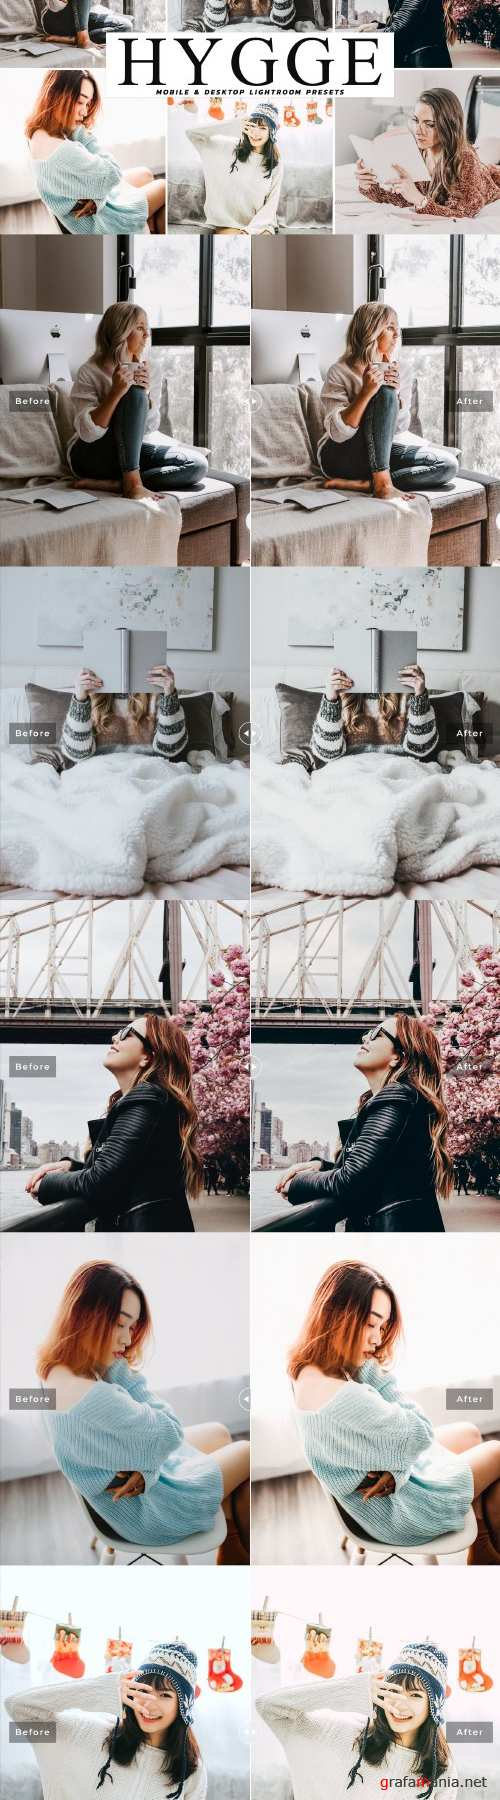 Hygge Lightroom Presets Pack - 4045513